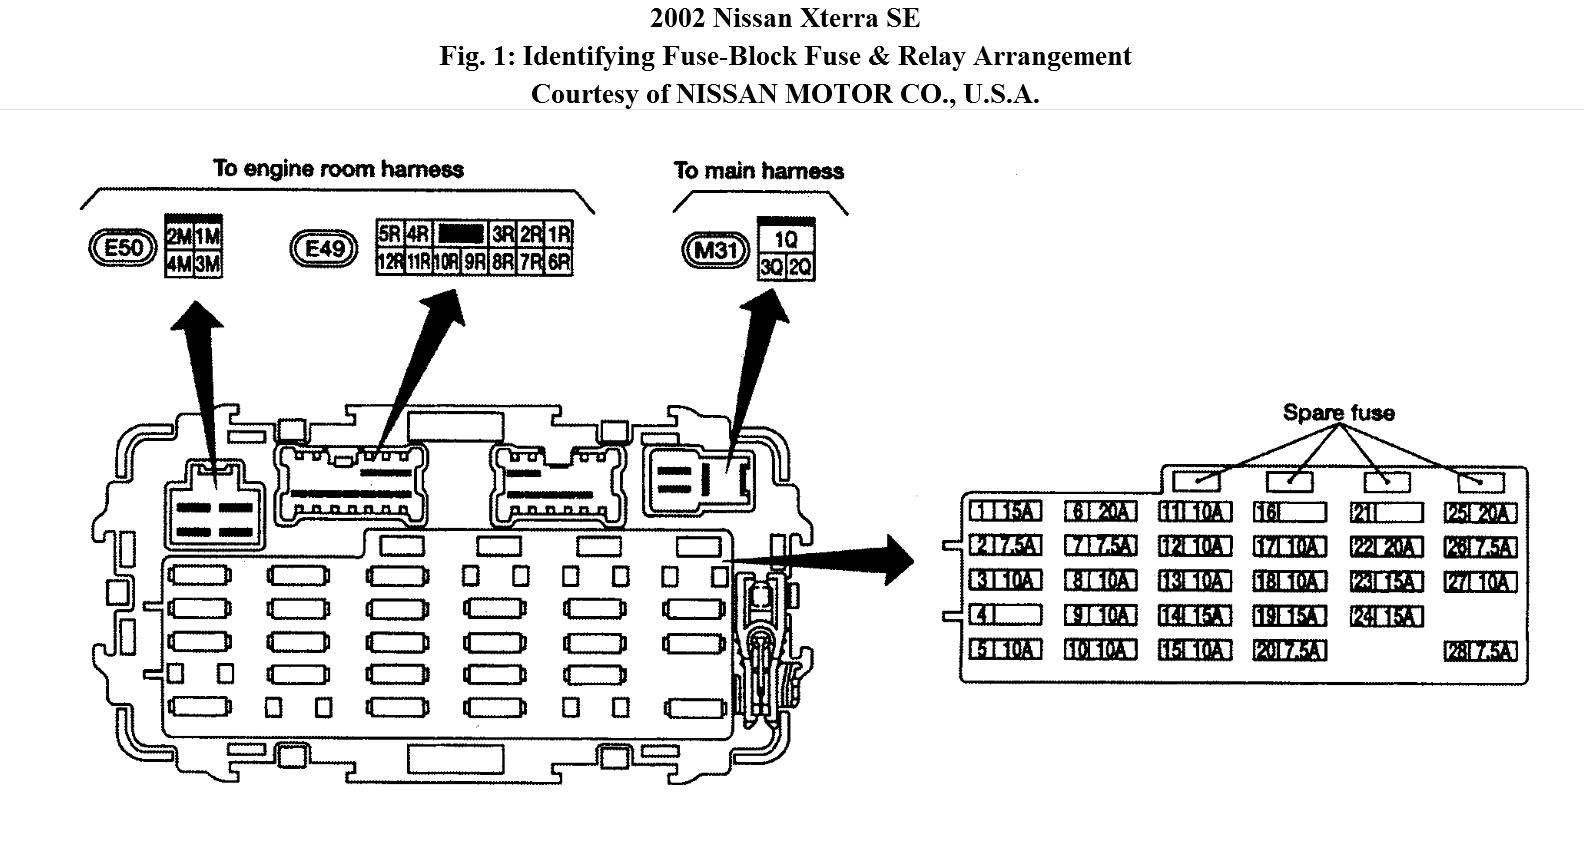 Nissan Pulsar Fuse Box Diagram Wiring Library